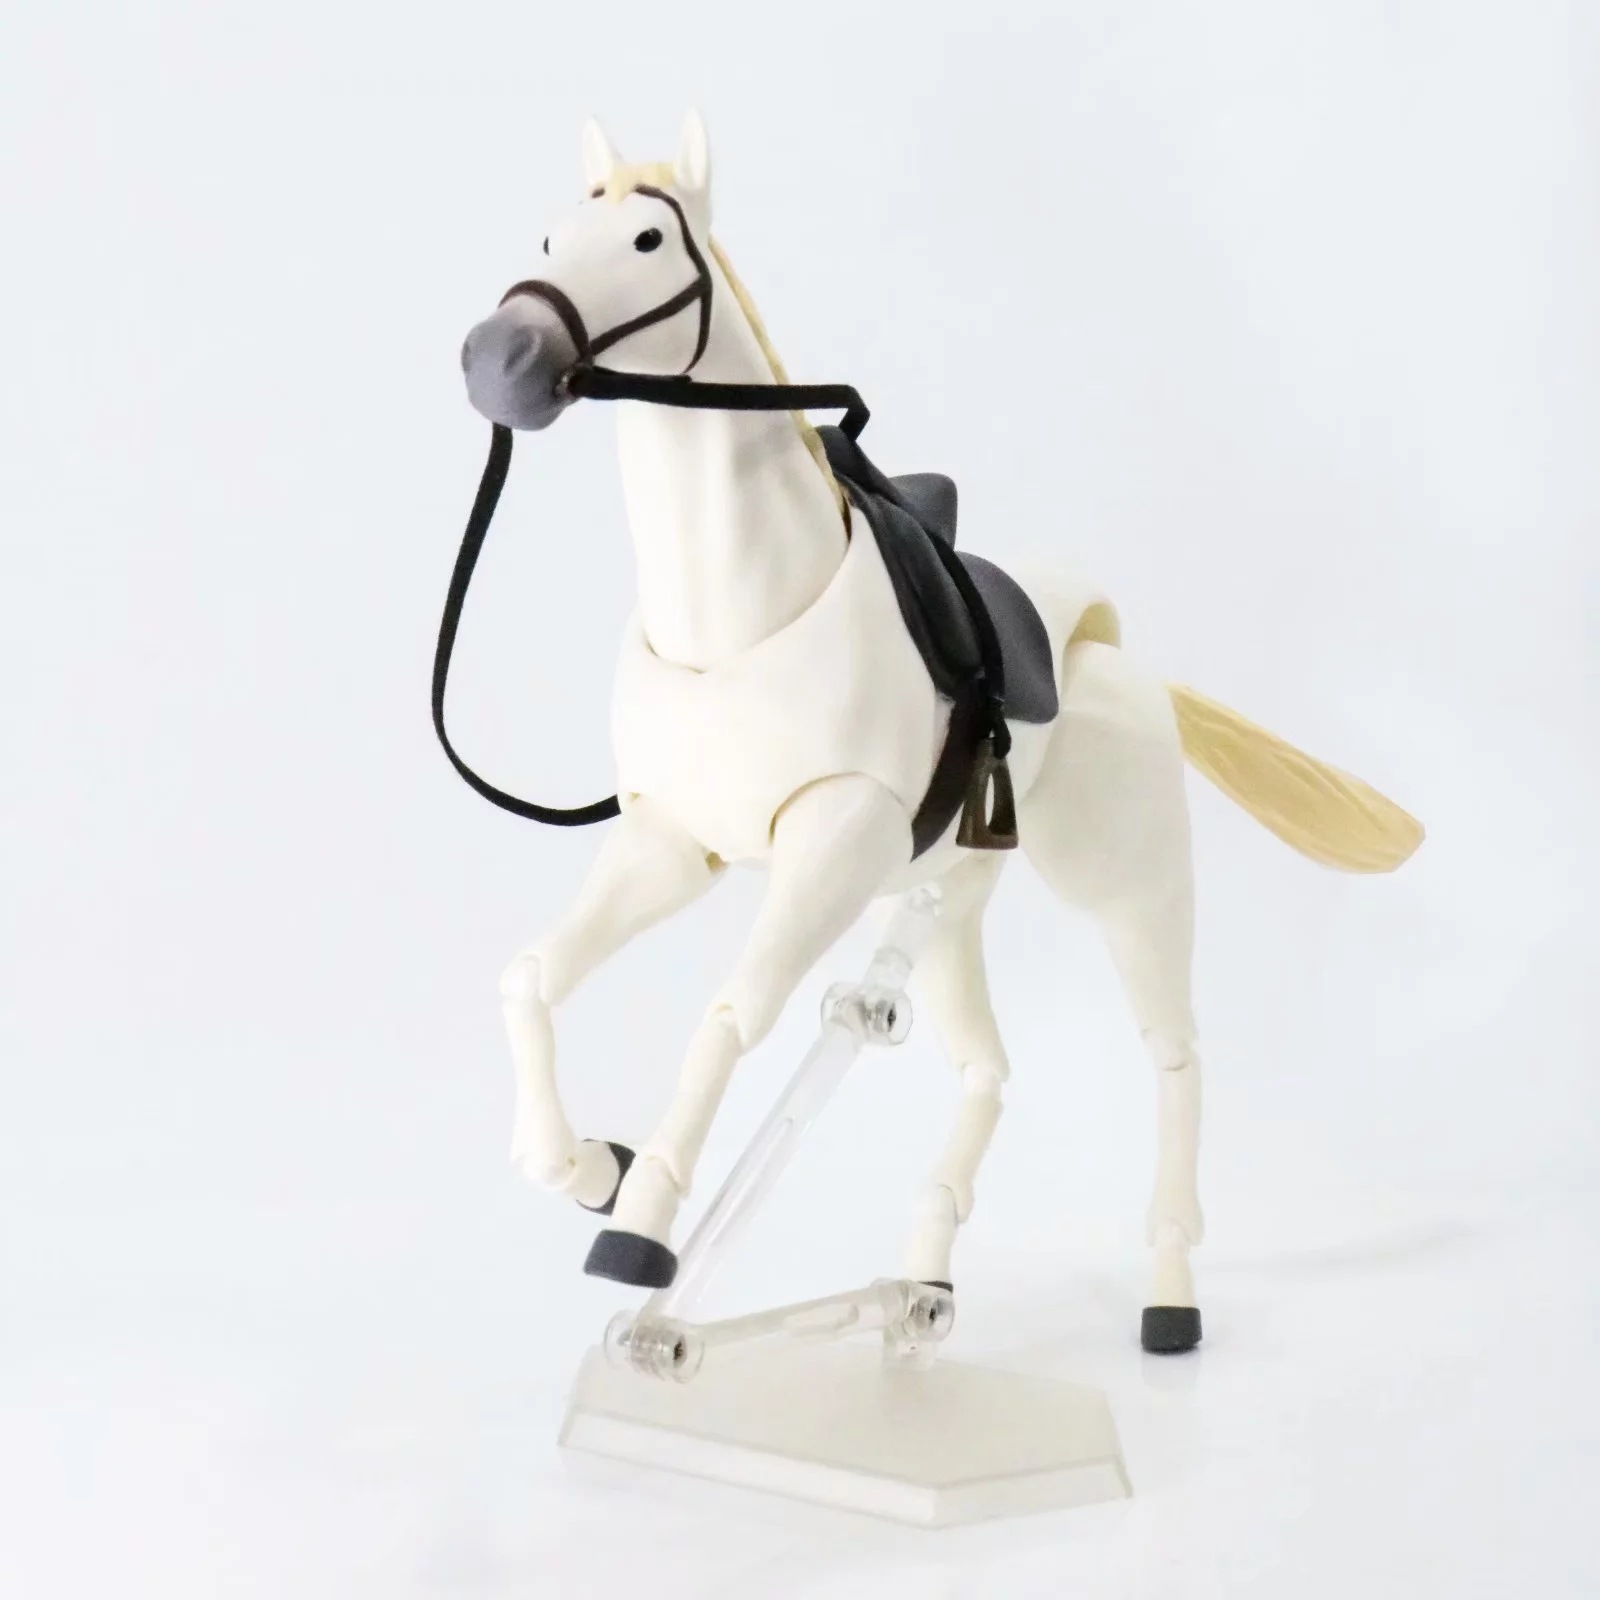 16CM Japanese anime figure brown/white horse action figure collectible model toys for boys